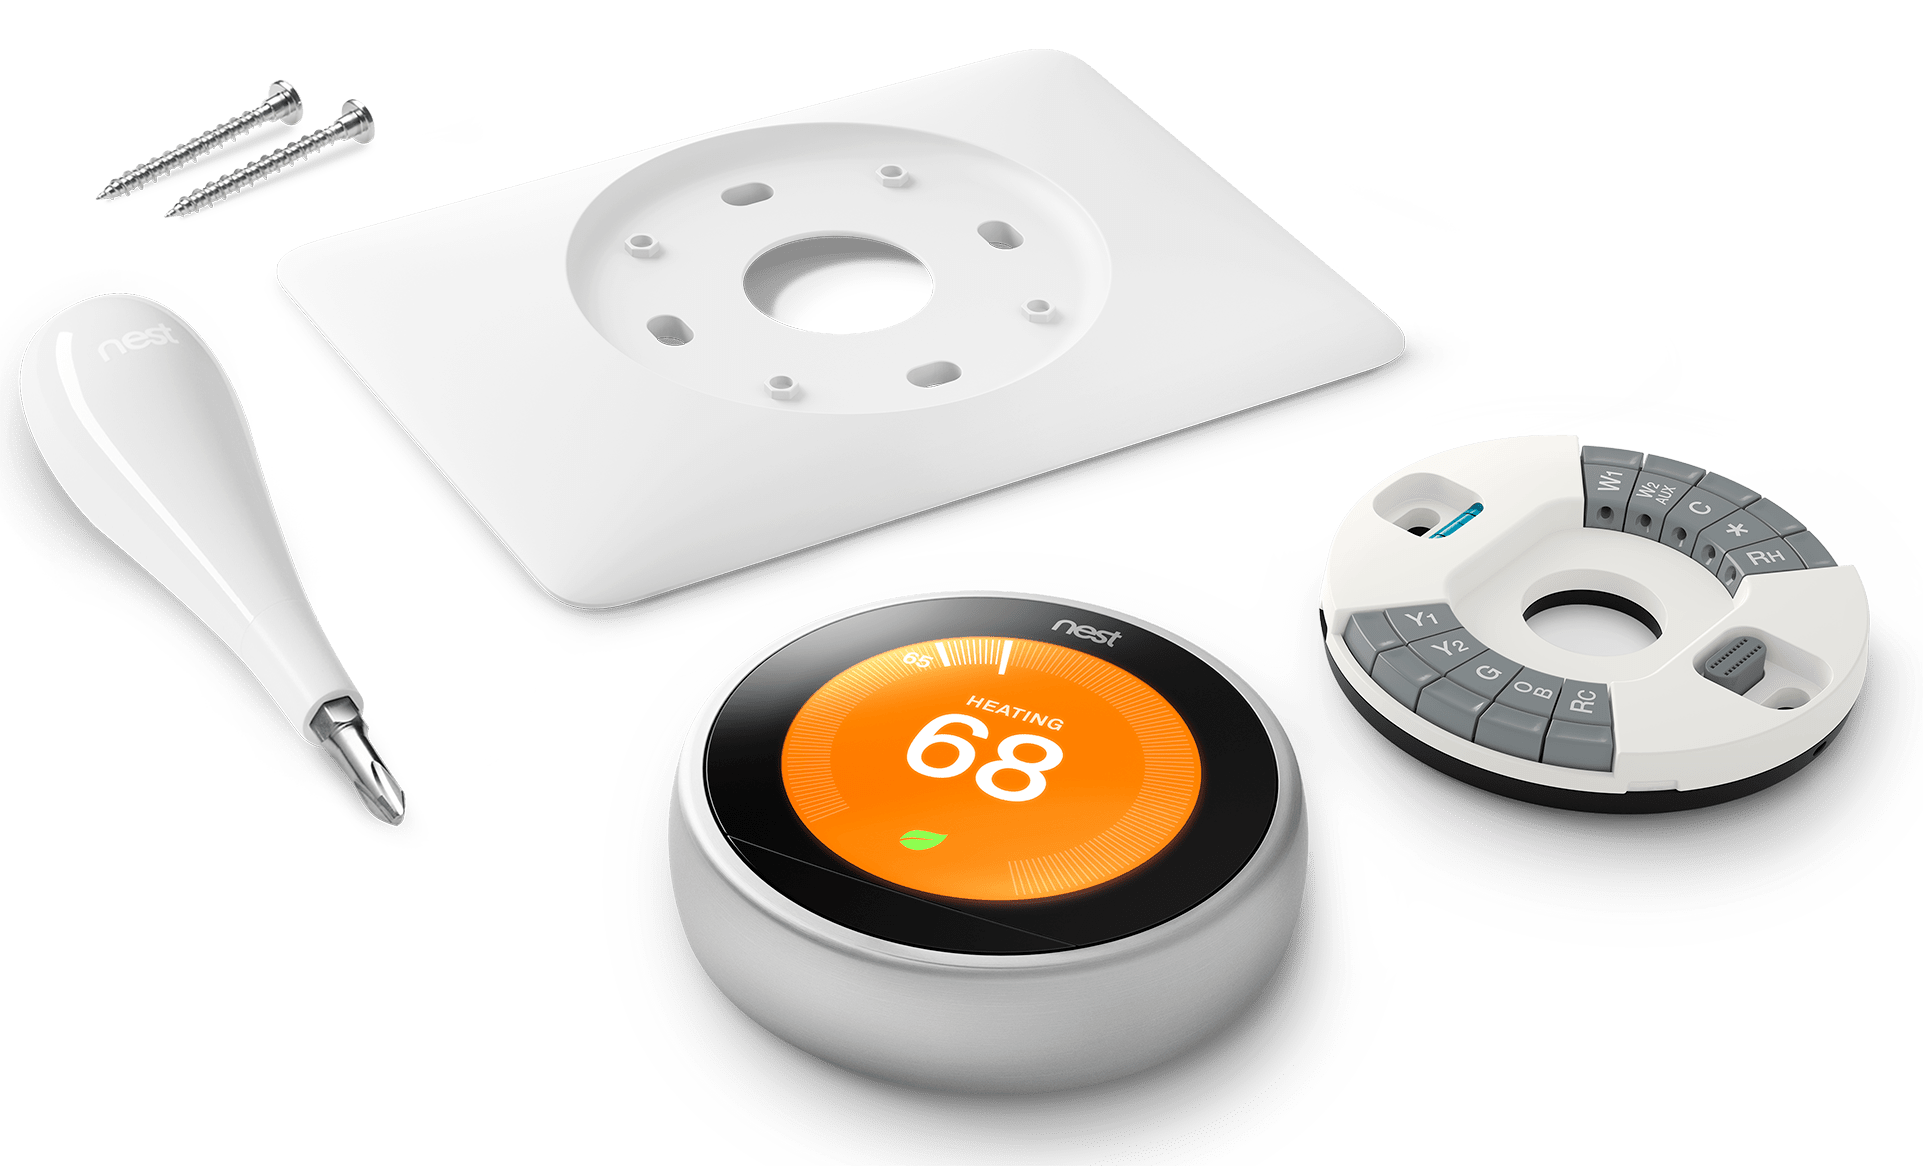 How To Install A 2nd Generation Nest Thermostat Manual Guide